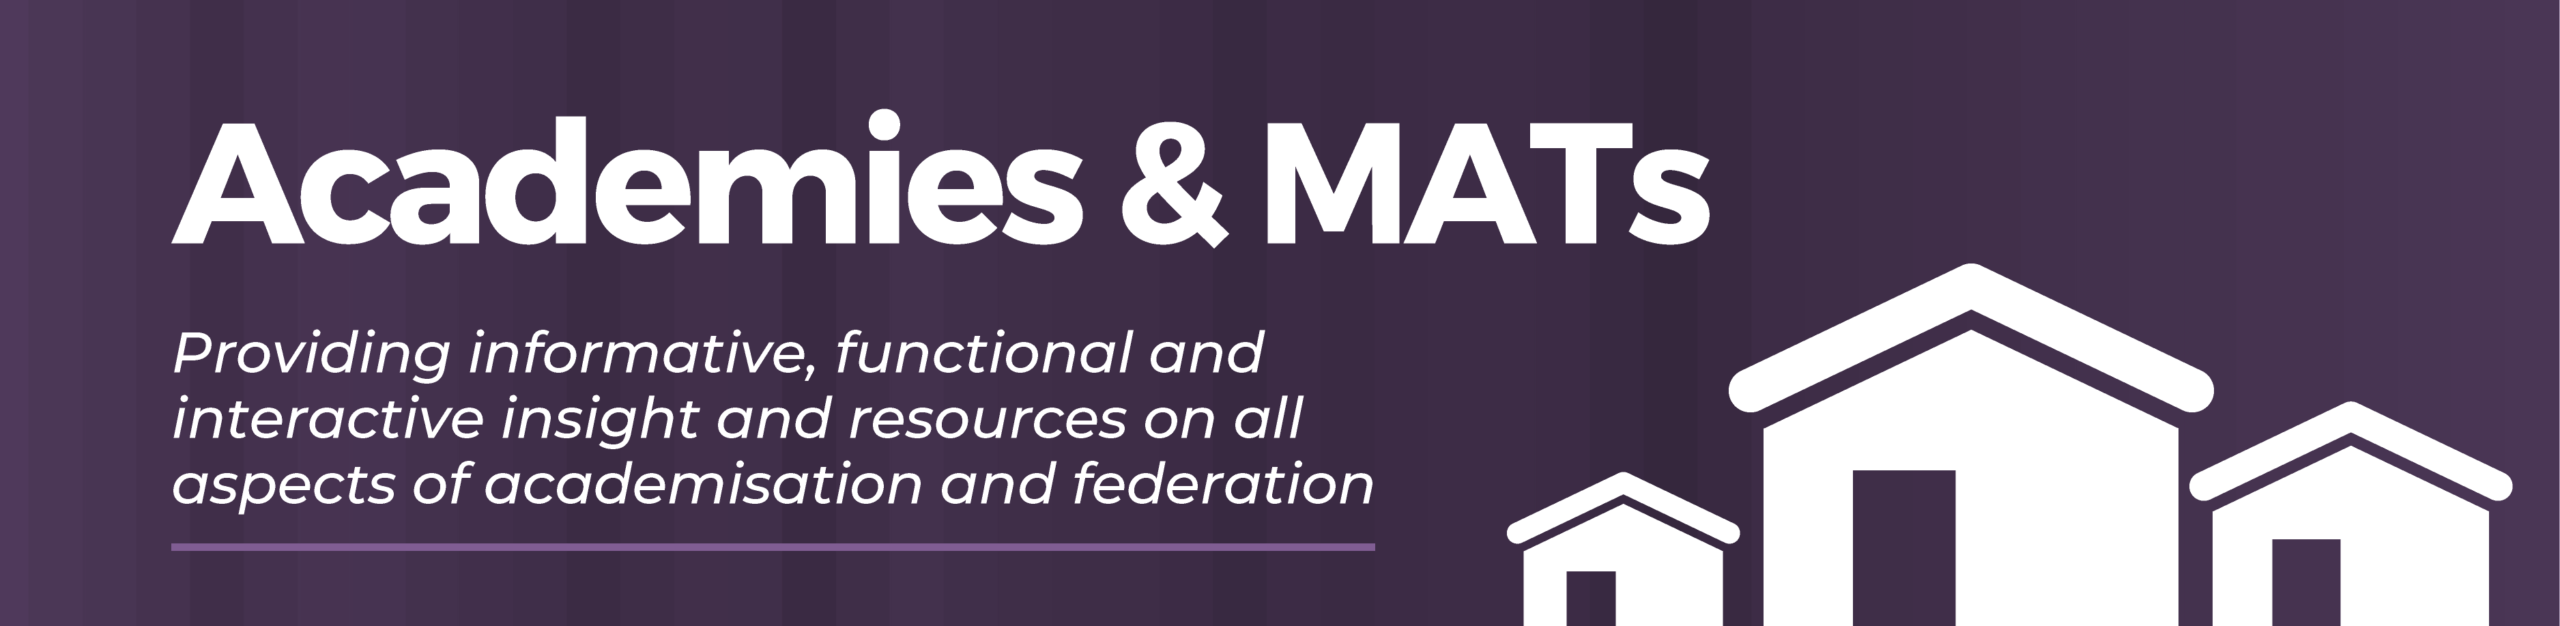 Academies & MATs. Providing informative, functional and interactive insight and resources on all aspects of academisation and federation..